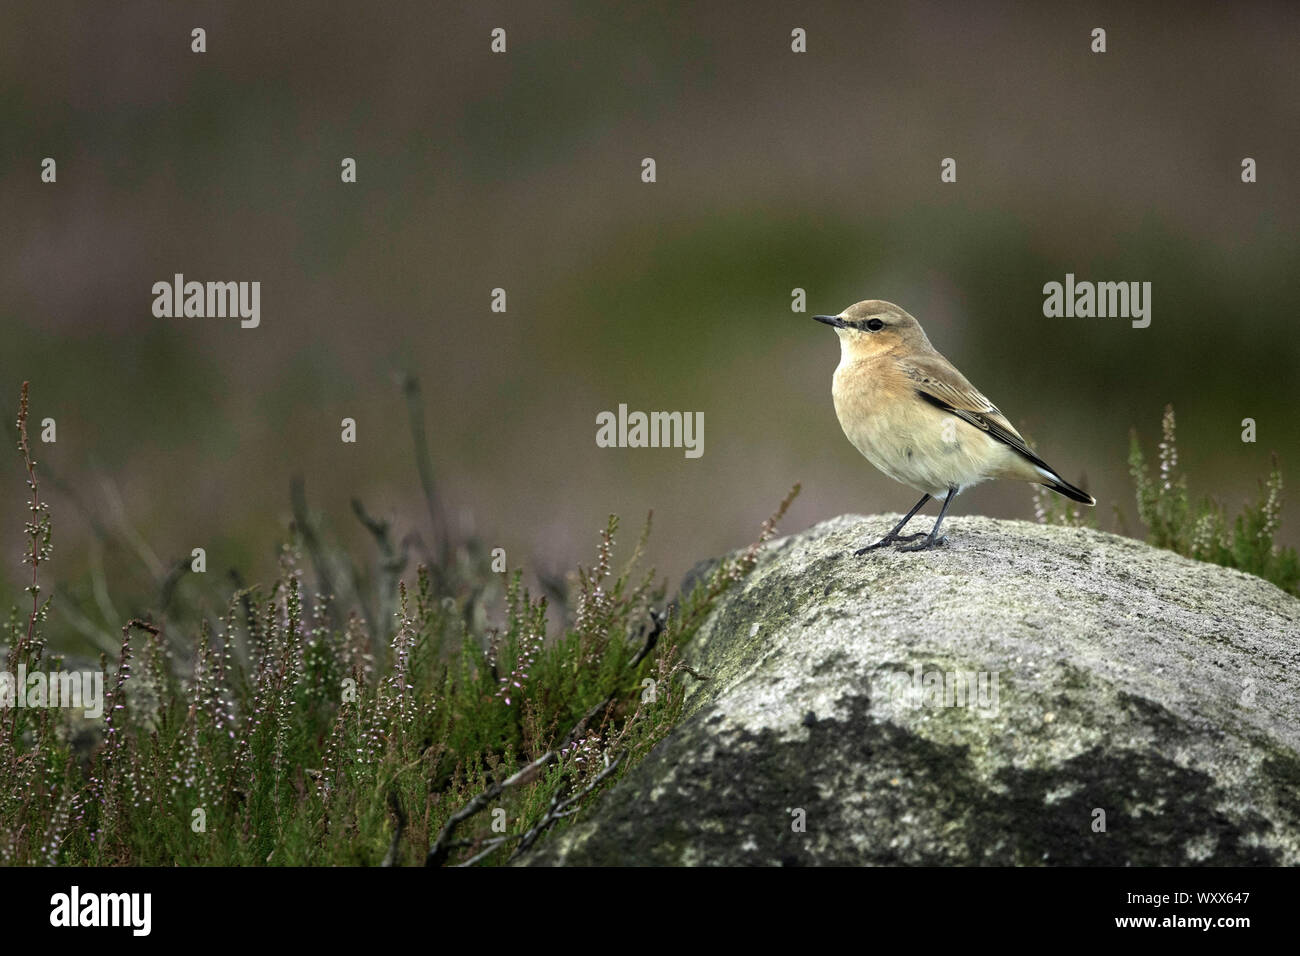 A female Northern Wheatear (Oenanthe oenanthe) perches on a rock in the Peak District National Park, UK. Stock Photo